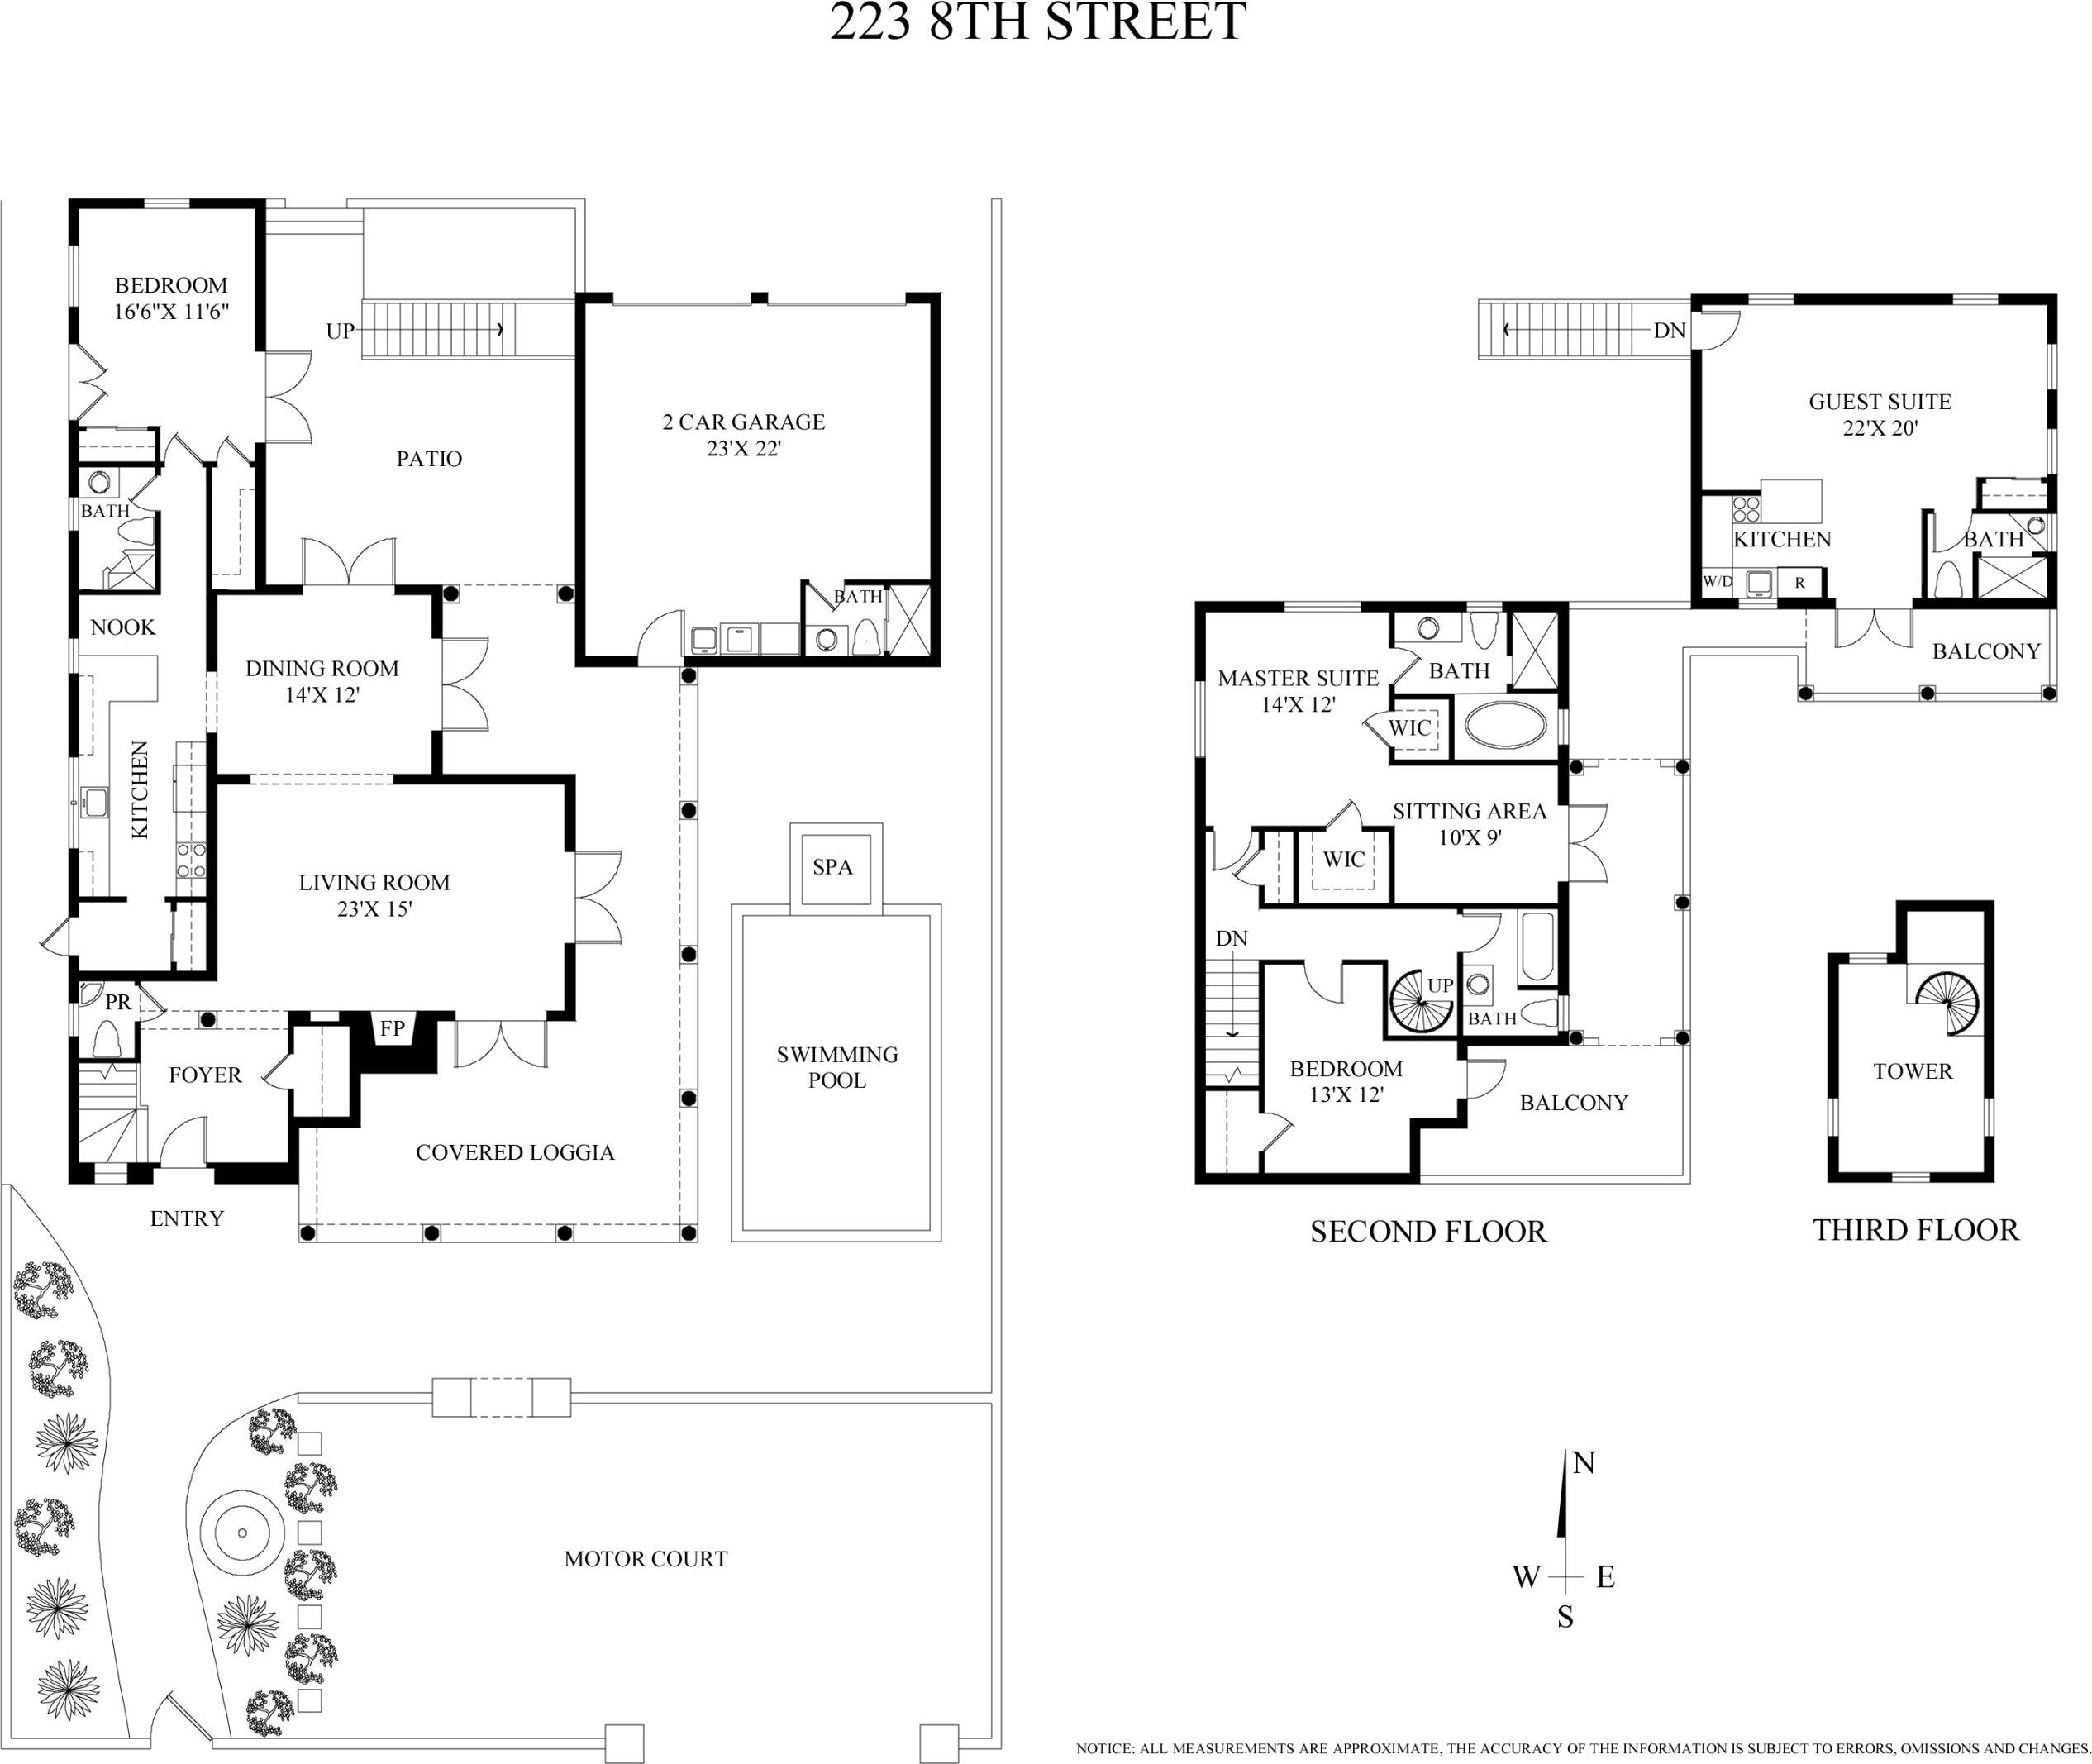 223 8th Street preview